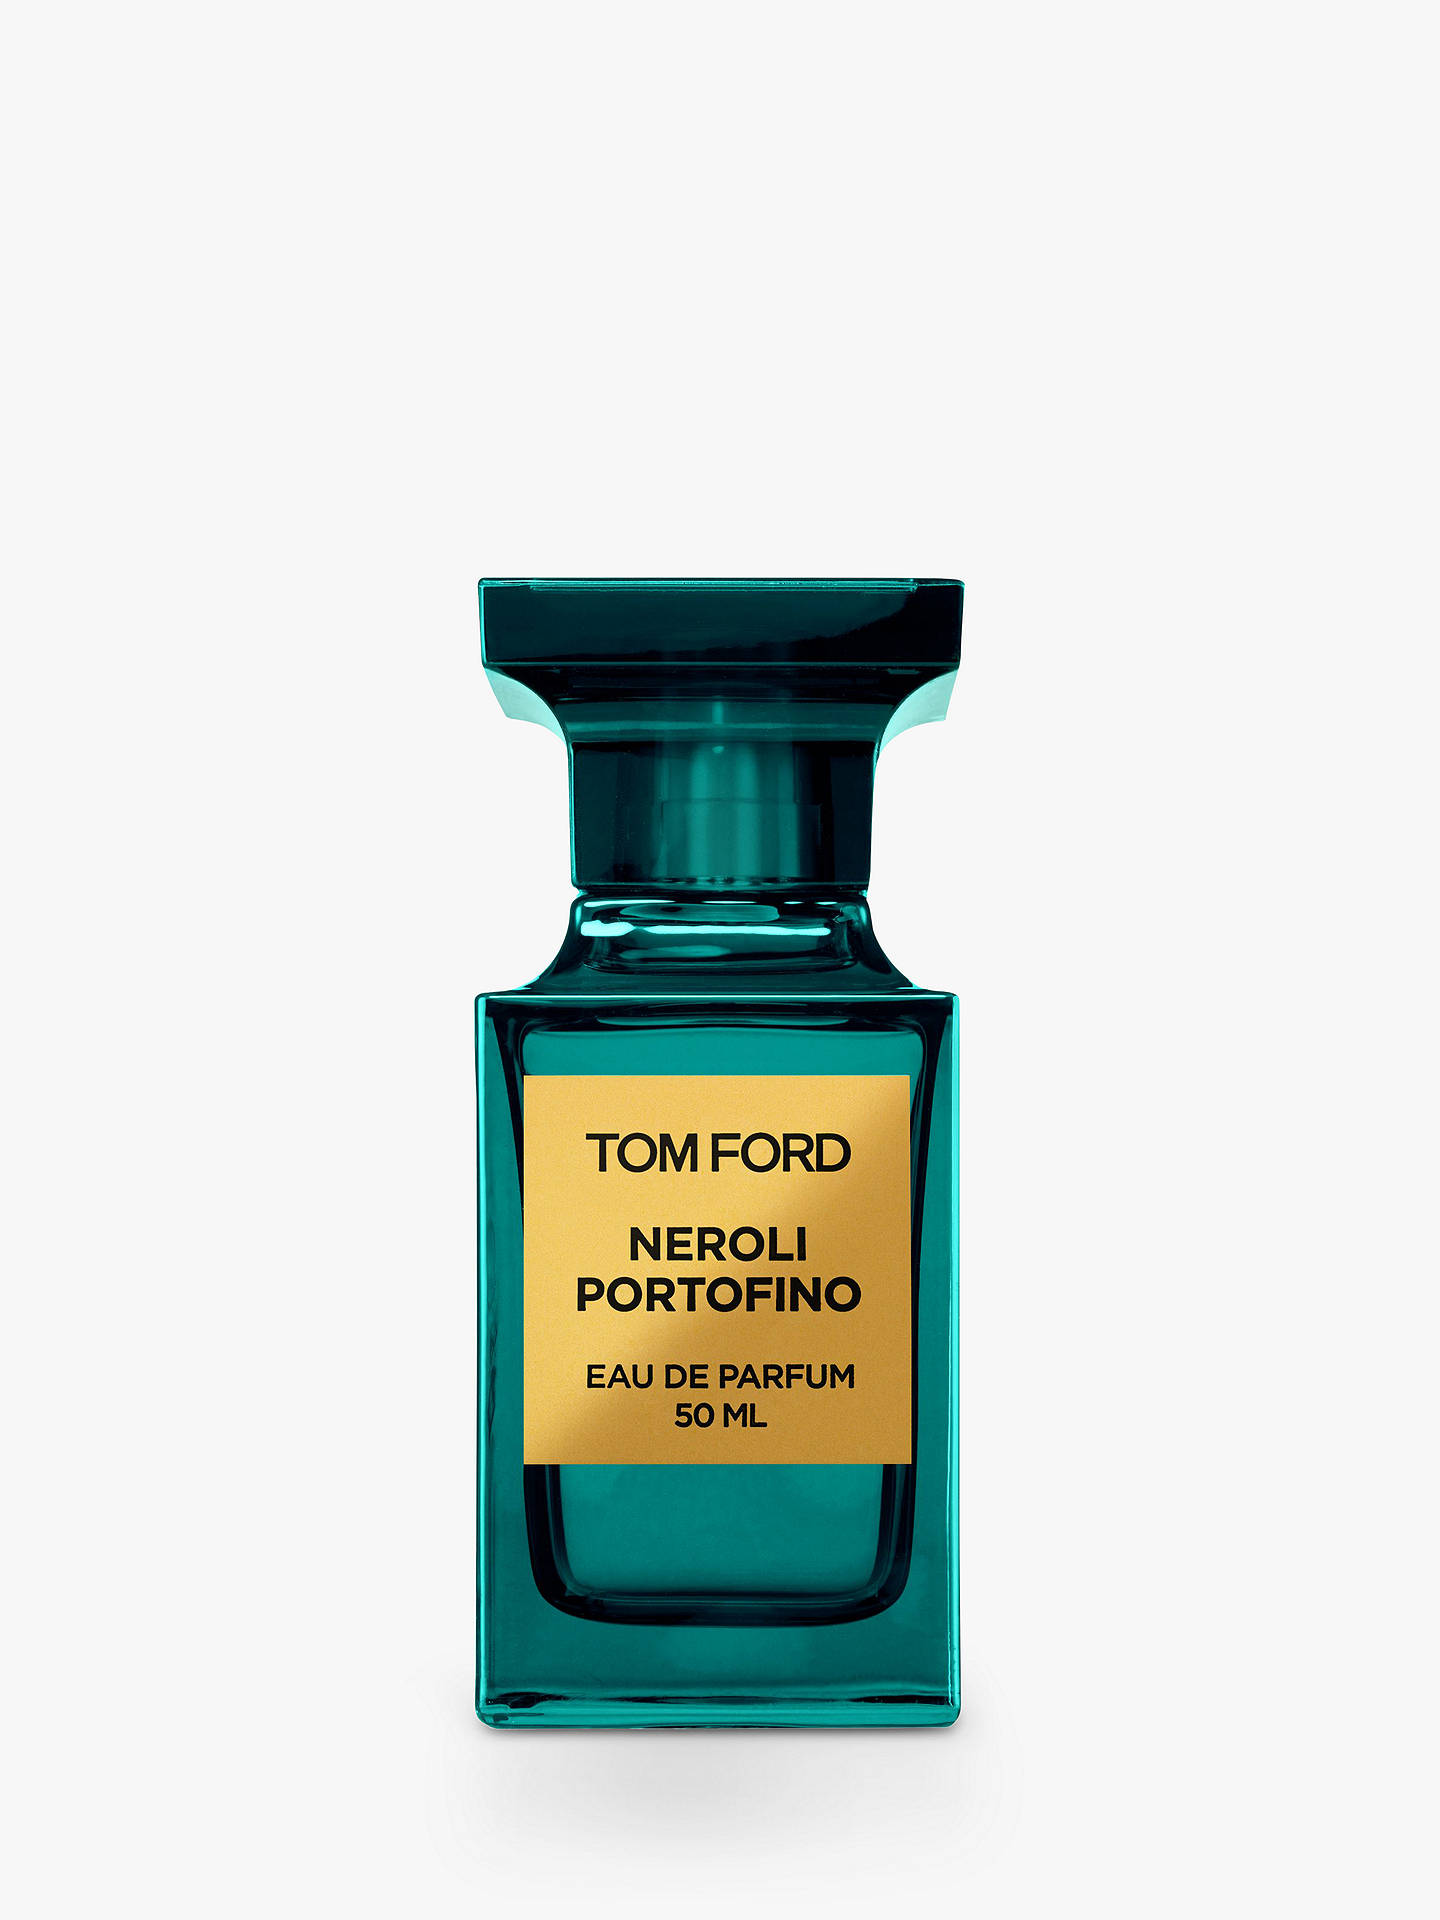 tom ford private blend neroli portofino eau de parfum 50ml at john lewis partners. Black Bedroom Furniture Sets. Home Design Ideas